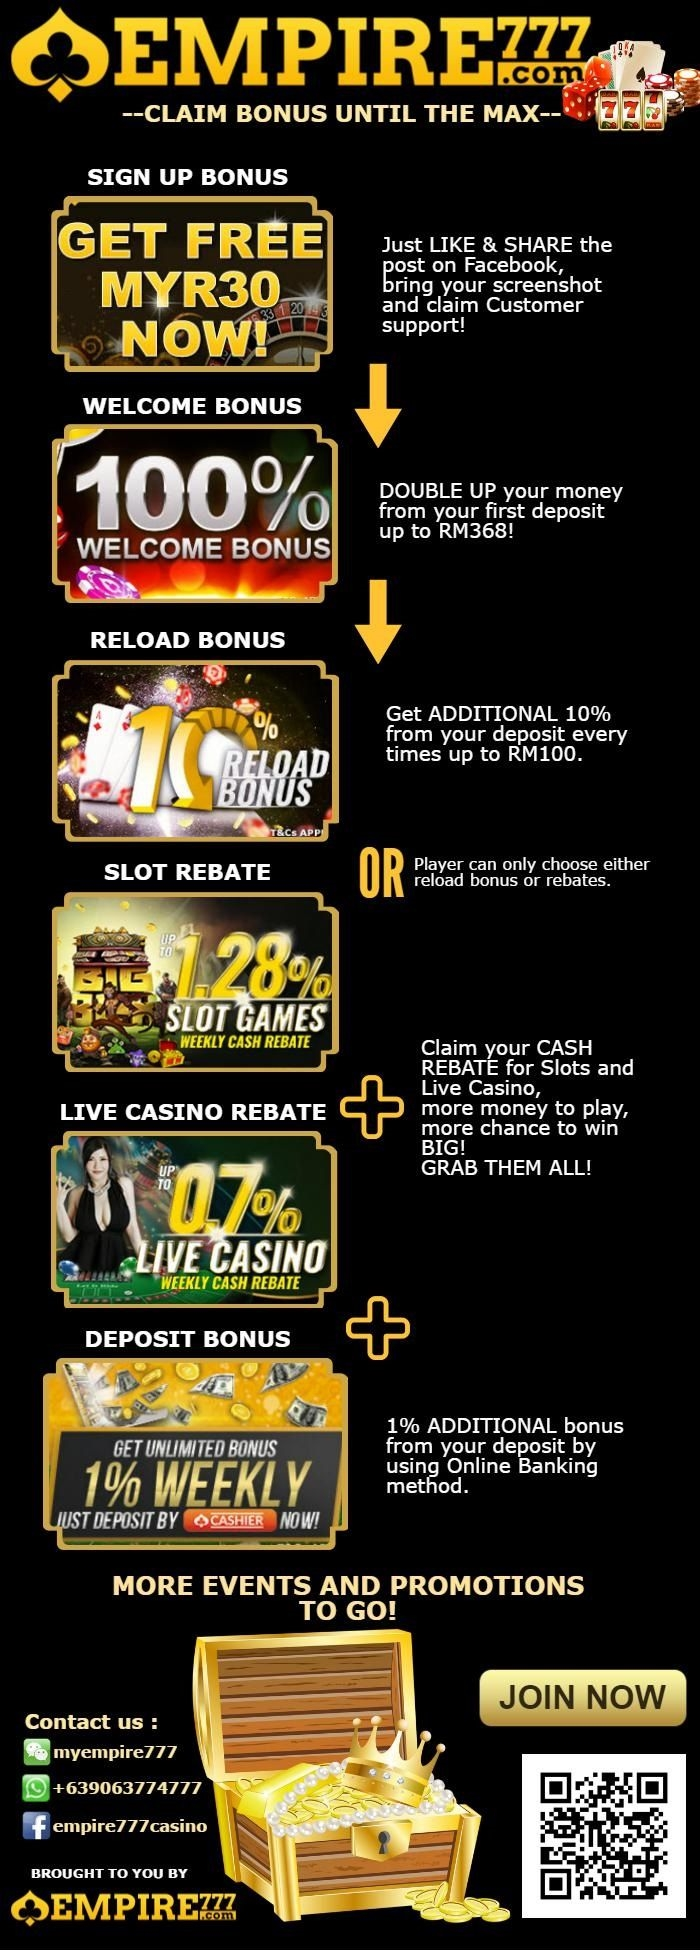 75 free casino spins at Red Stag